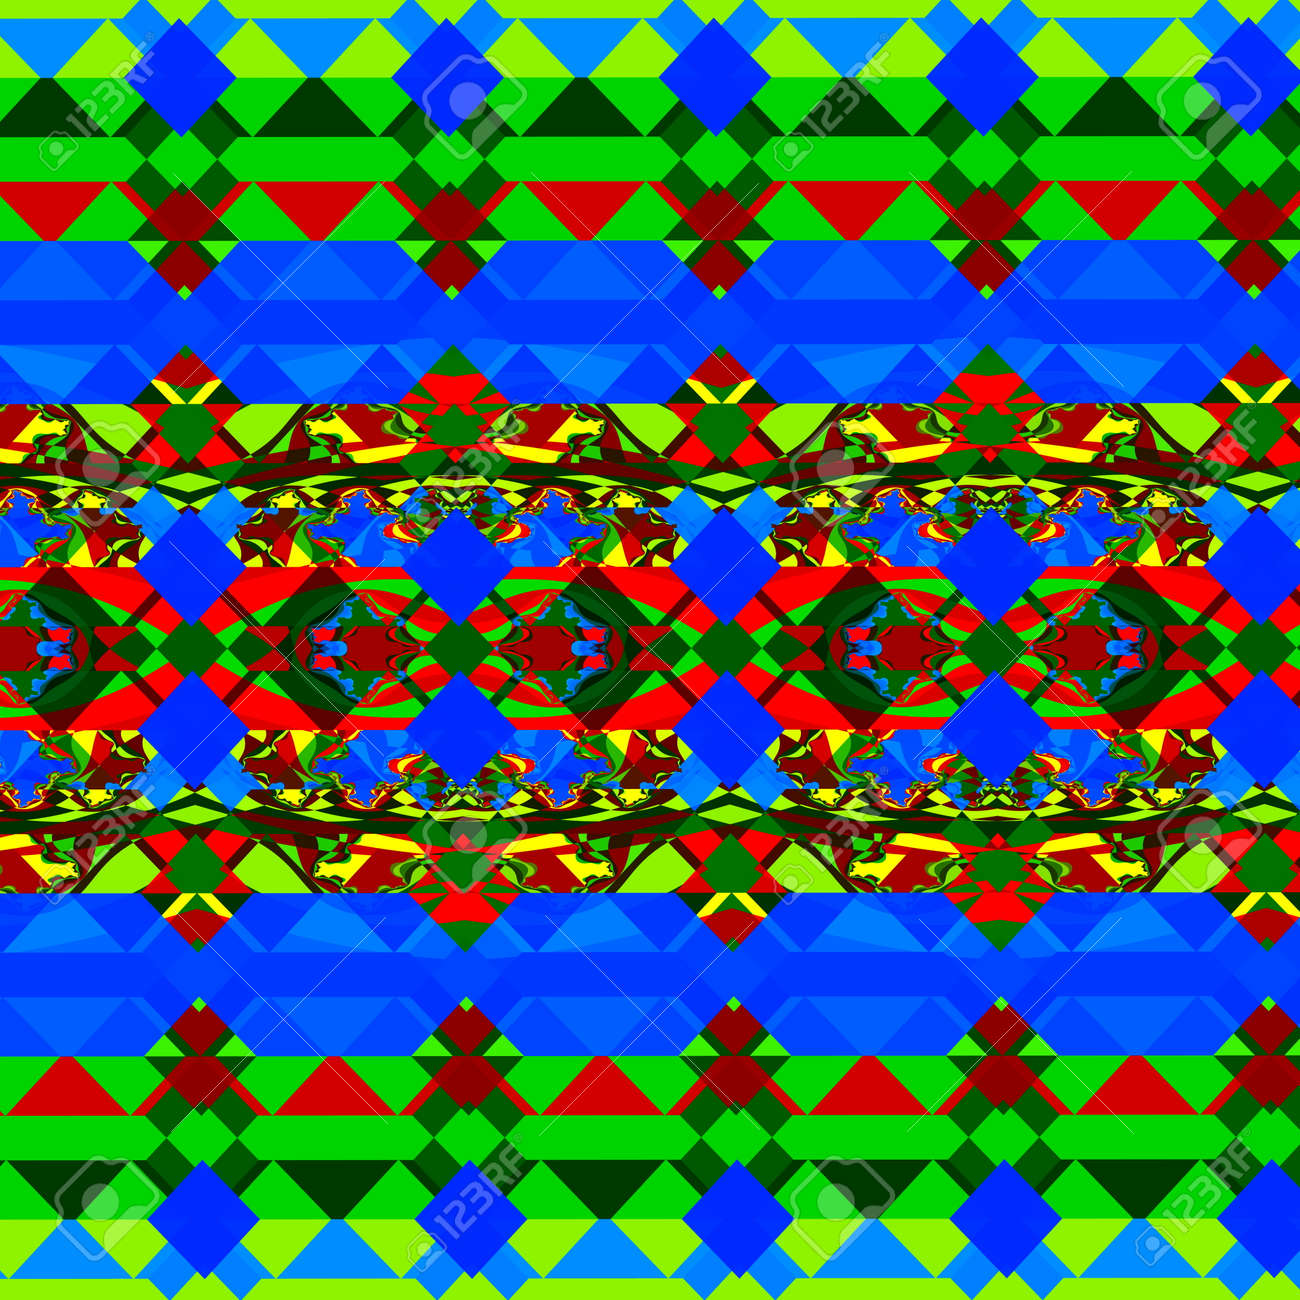 Psychedelic Green And Blue Shapes. Odd Style Artwork. Loony Tile ...